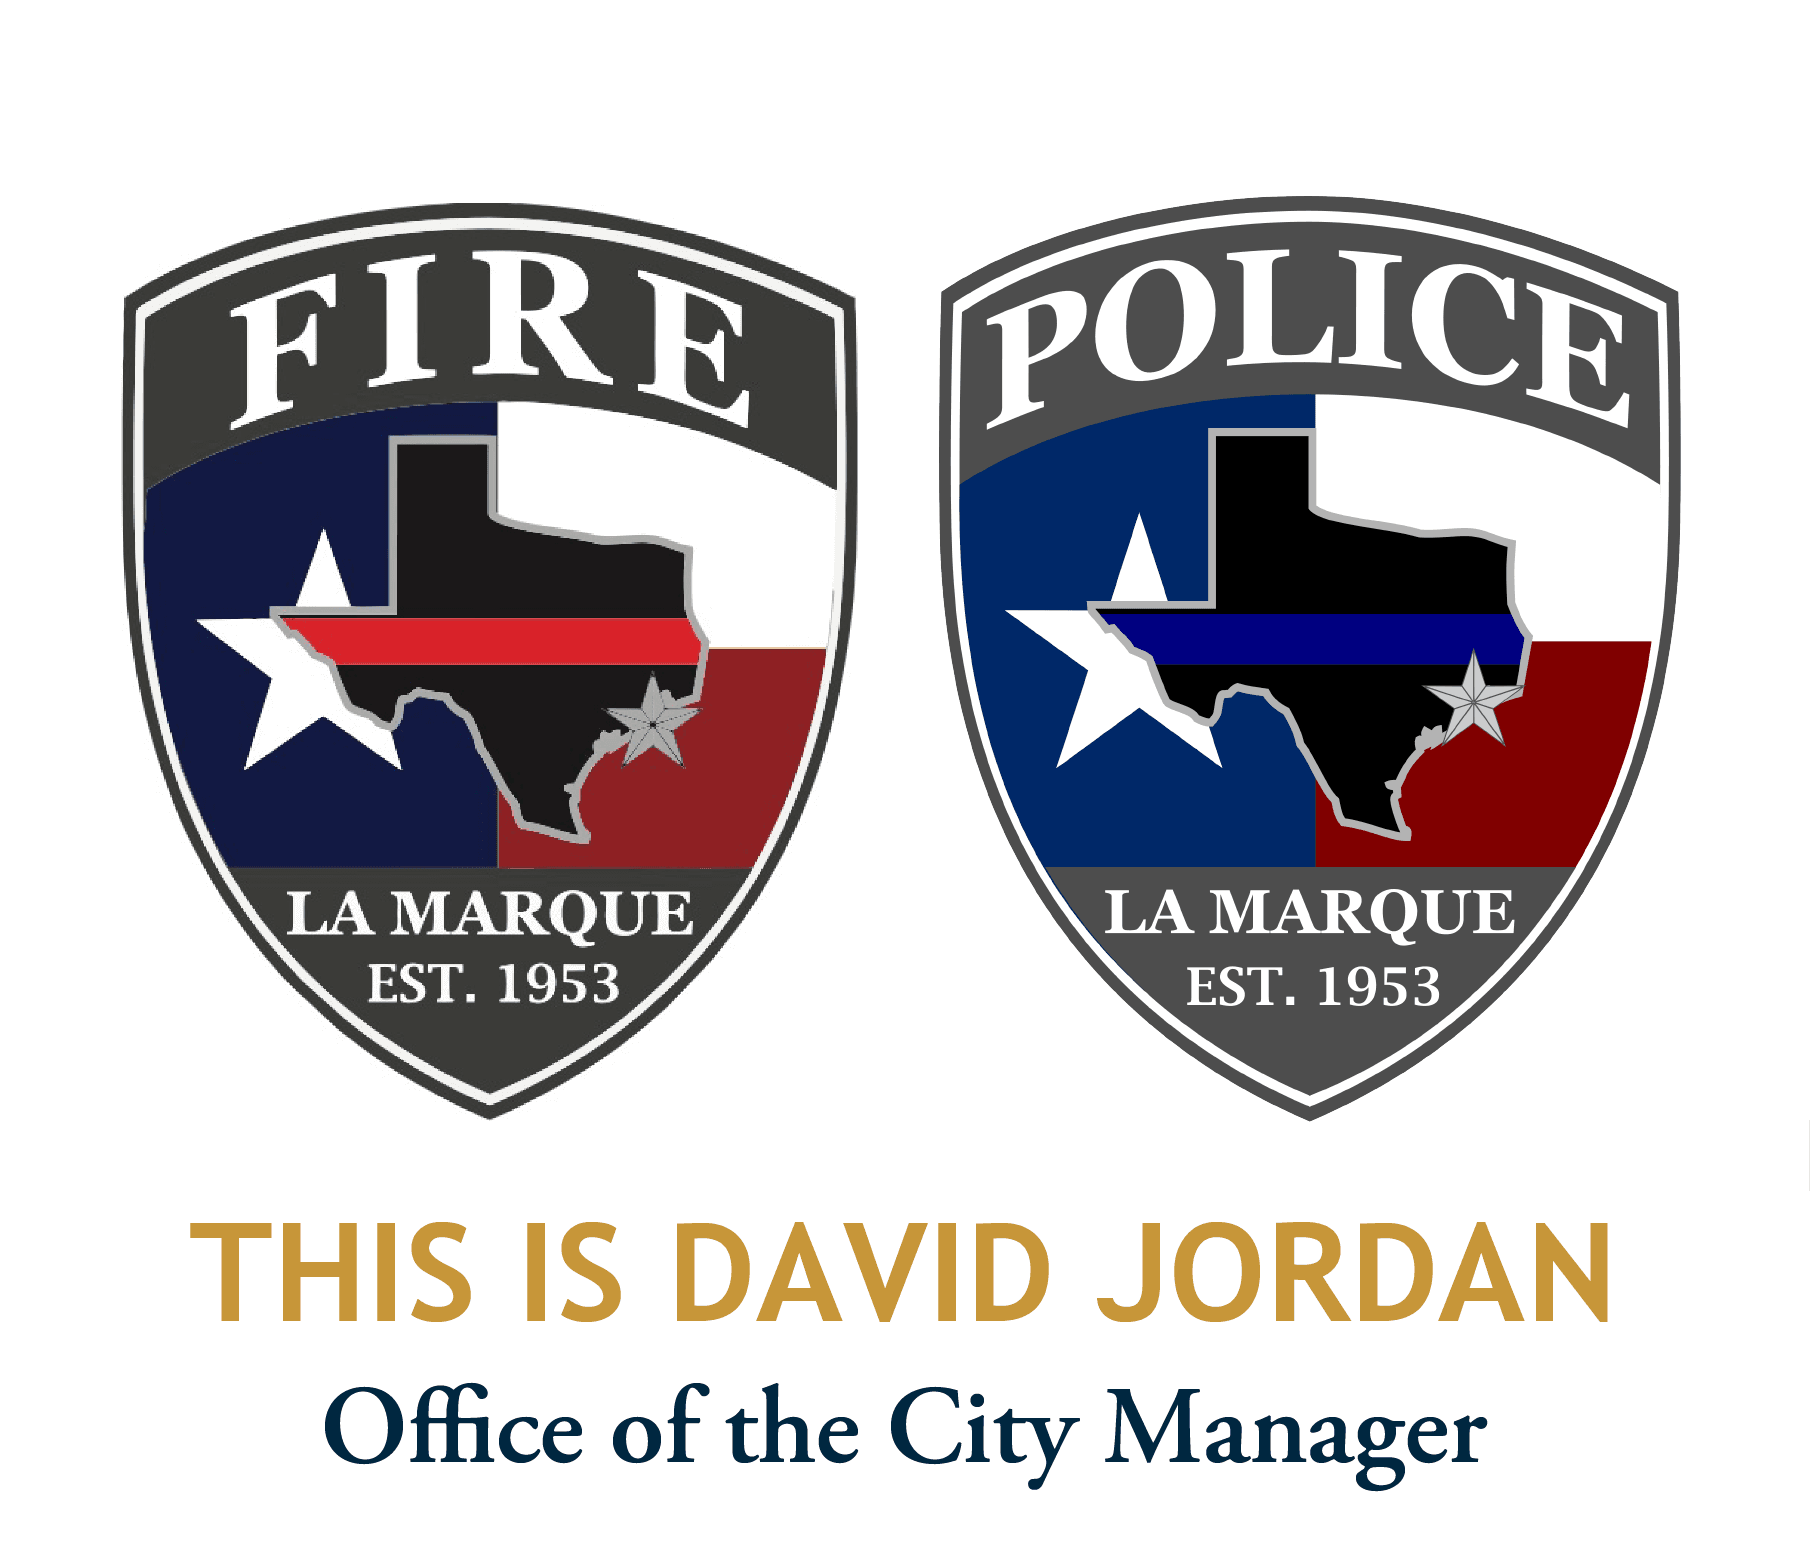 This is David Jordan_graphic with police and fire patch logos